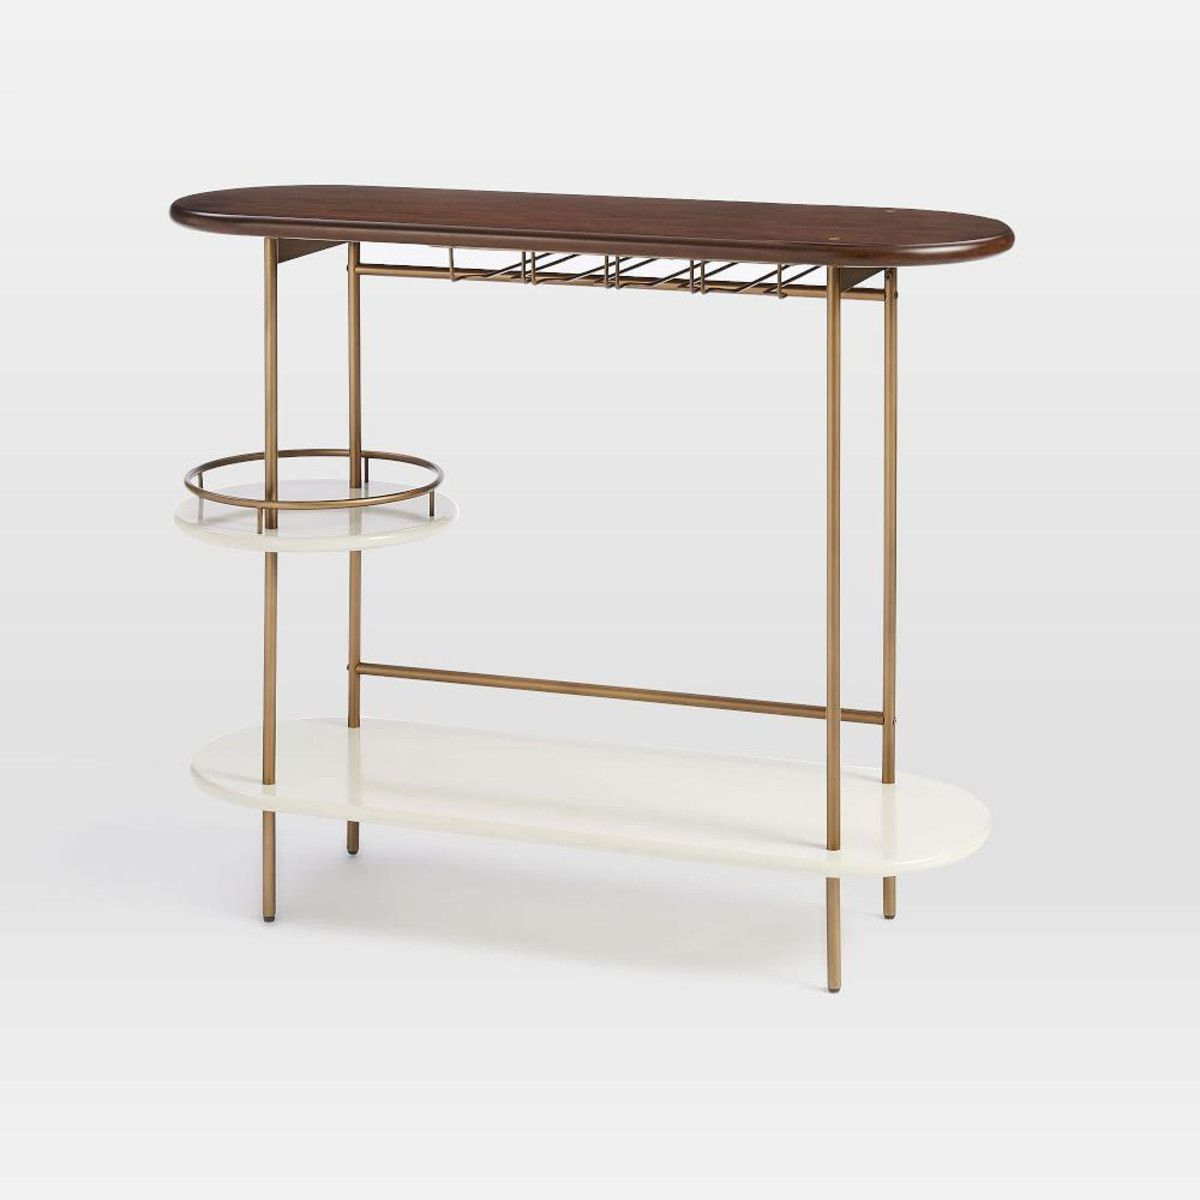 Tiered Bar Console | Bar Carts | Pinterest | Consoles, Bar And Bar Carts With Regard To Elke Glass Console Tables With Polished Aluminum Base (View 11 of 20)